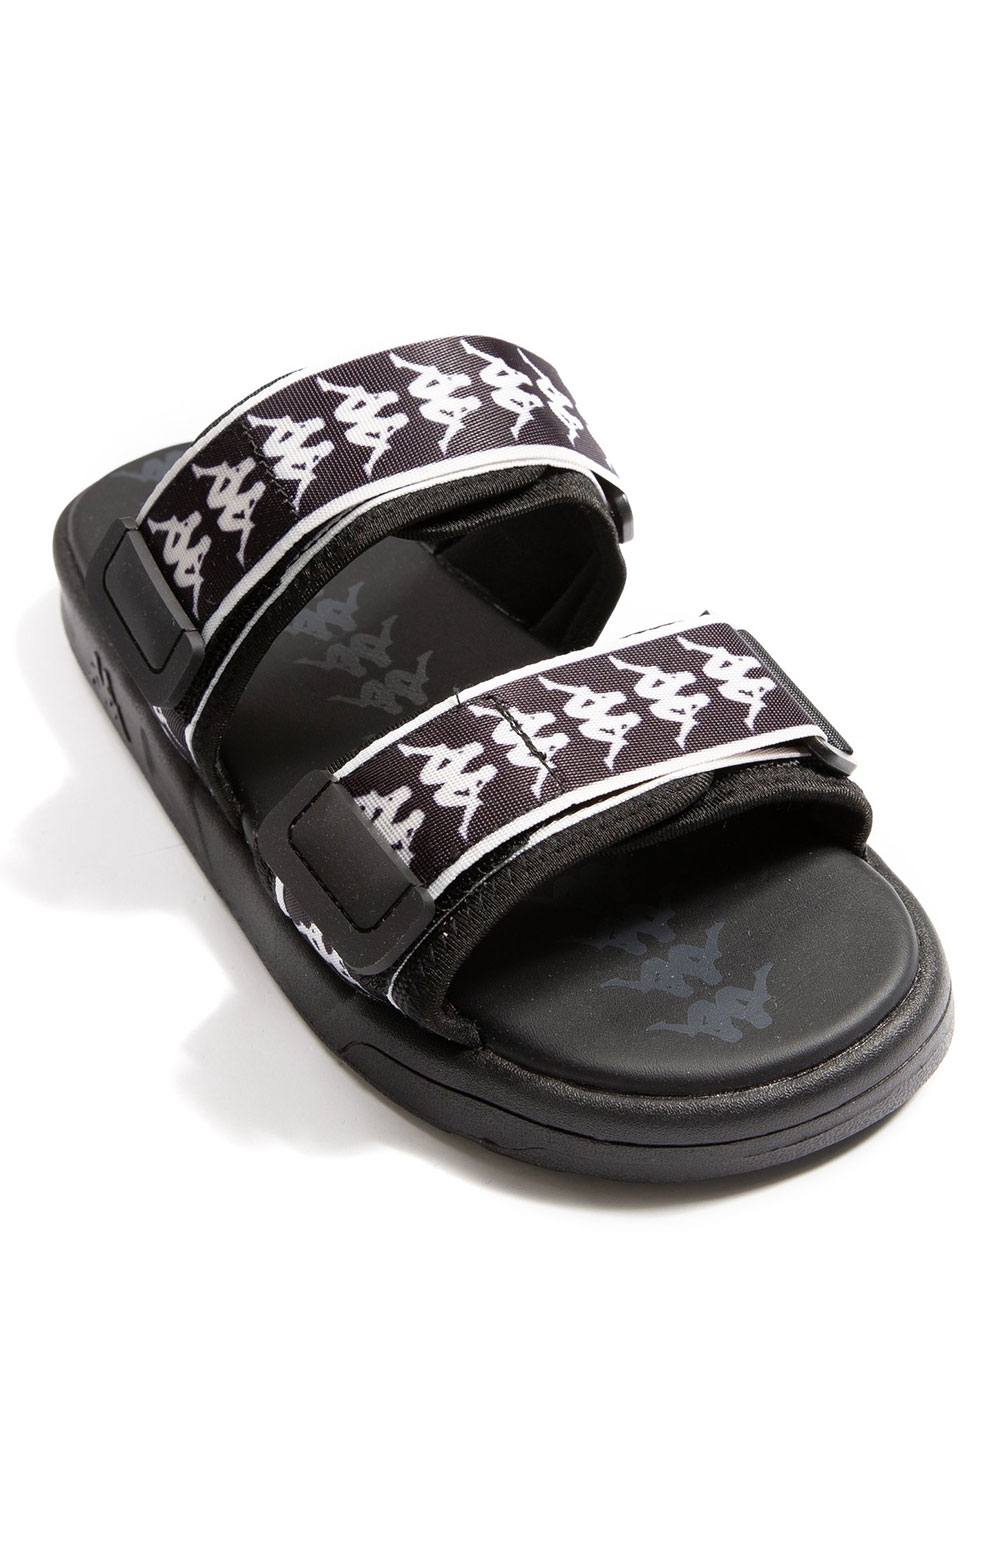 222 Banda Aster 1 Slides - Black/White 3